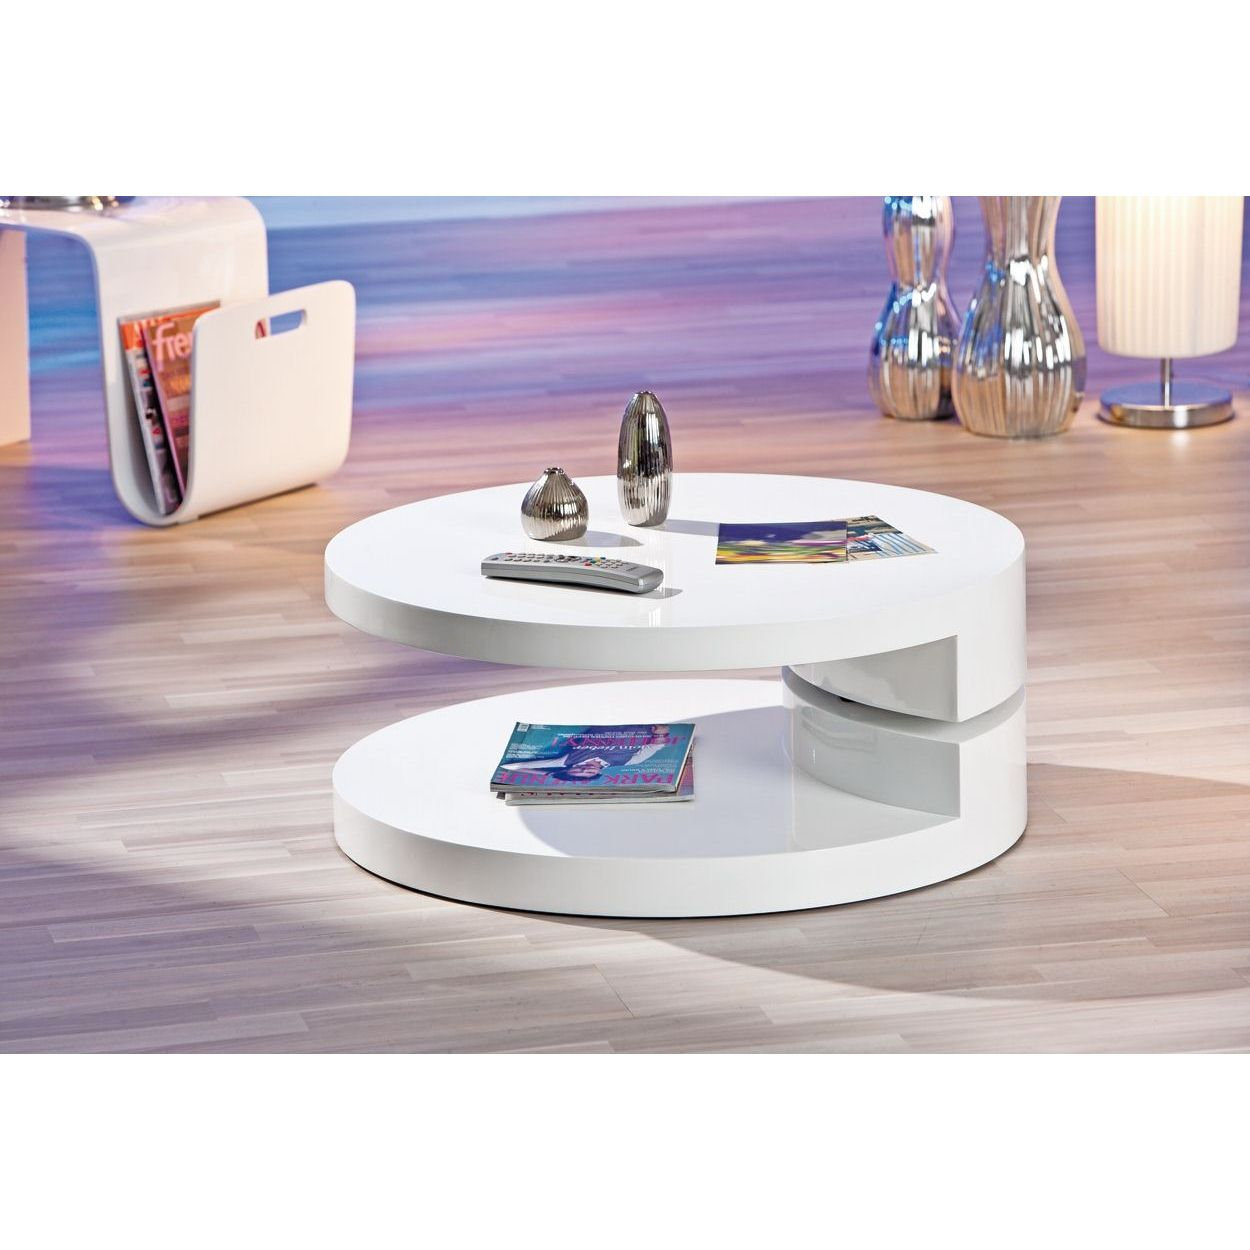 Deco in paris table basse laque blanc ronde extensible for Table carree extensible blanc laque